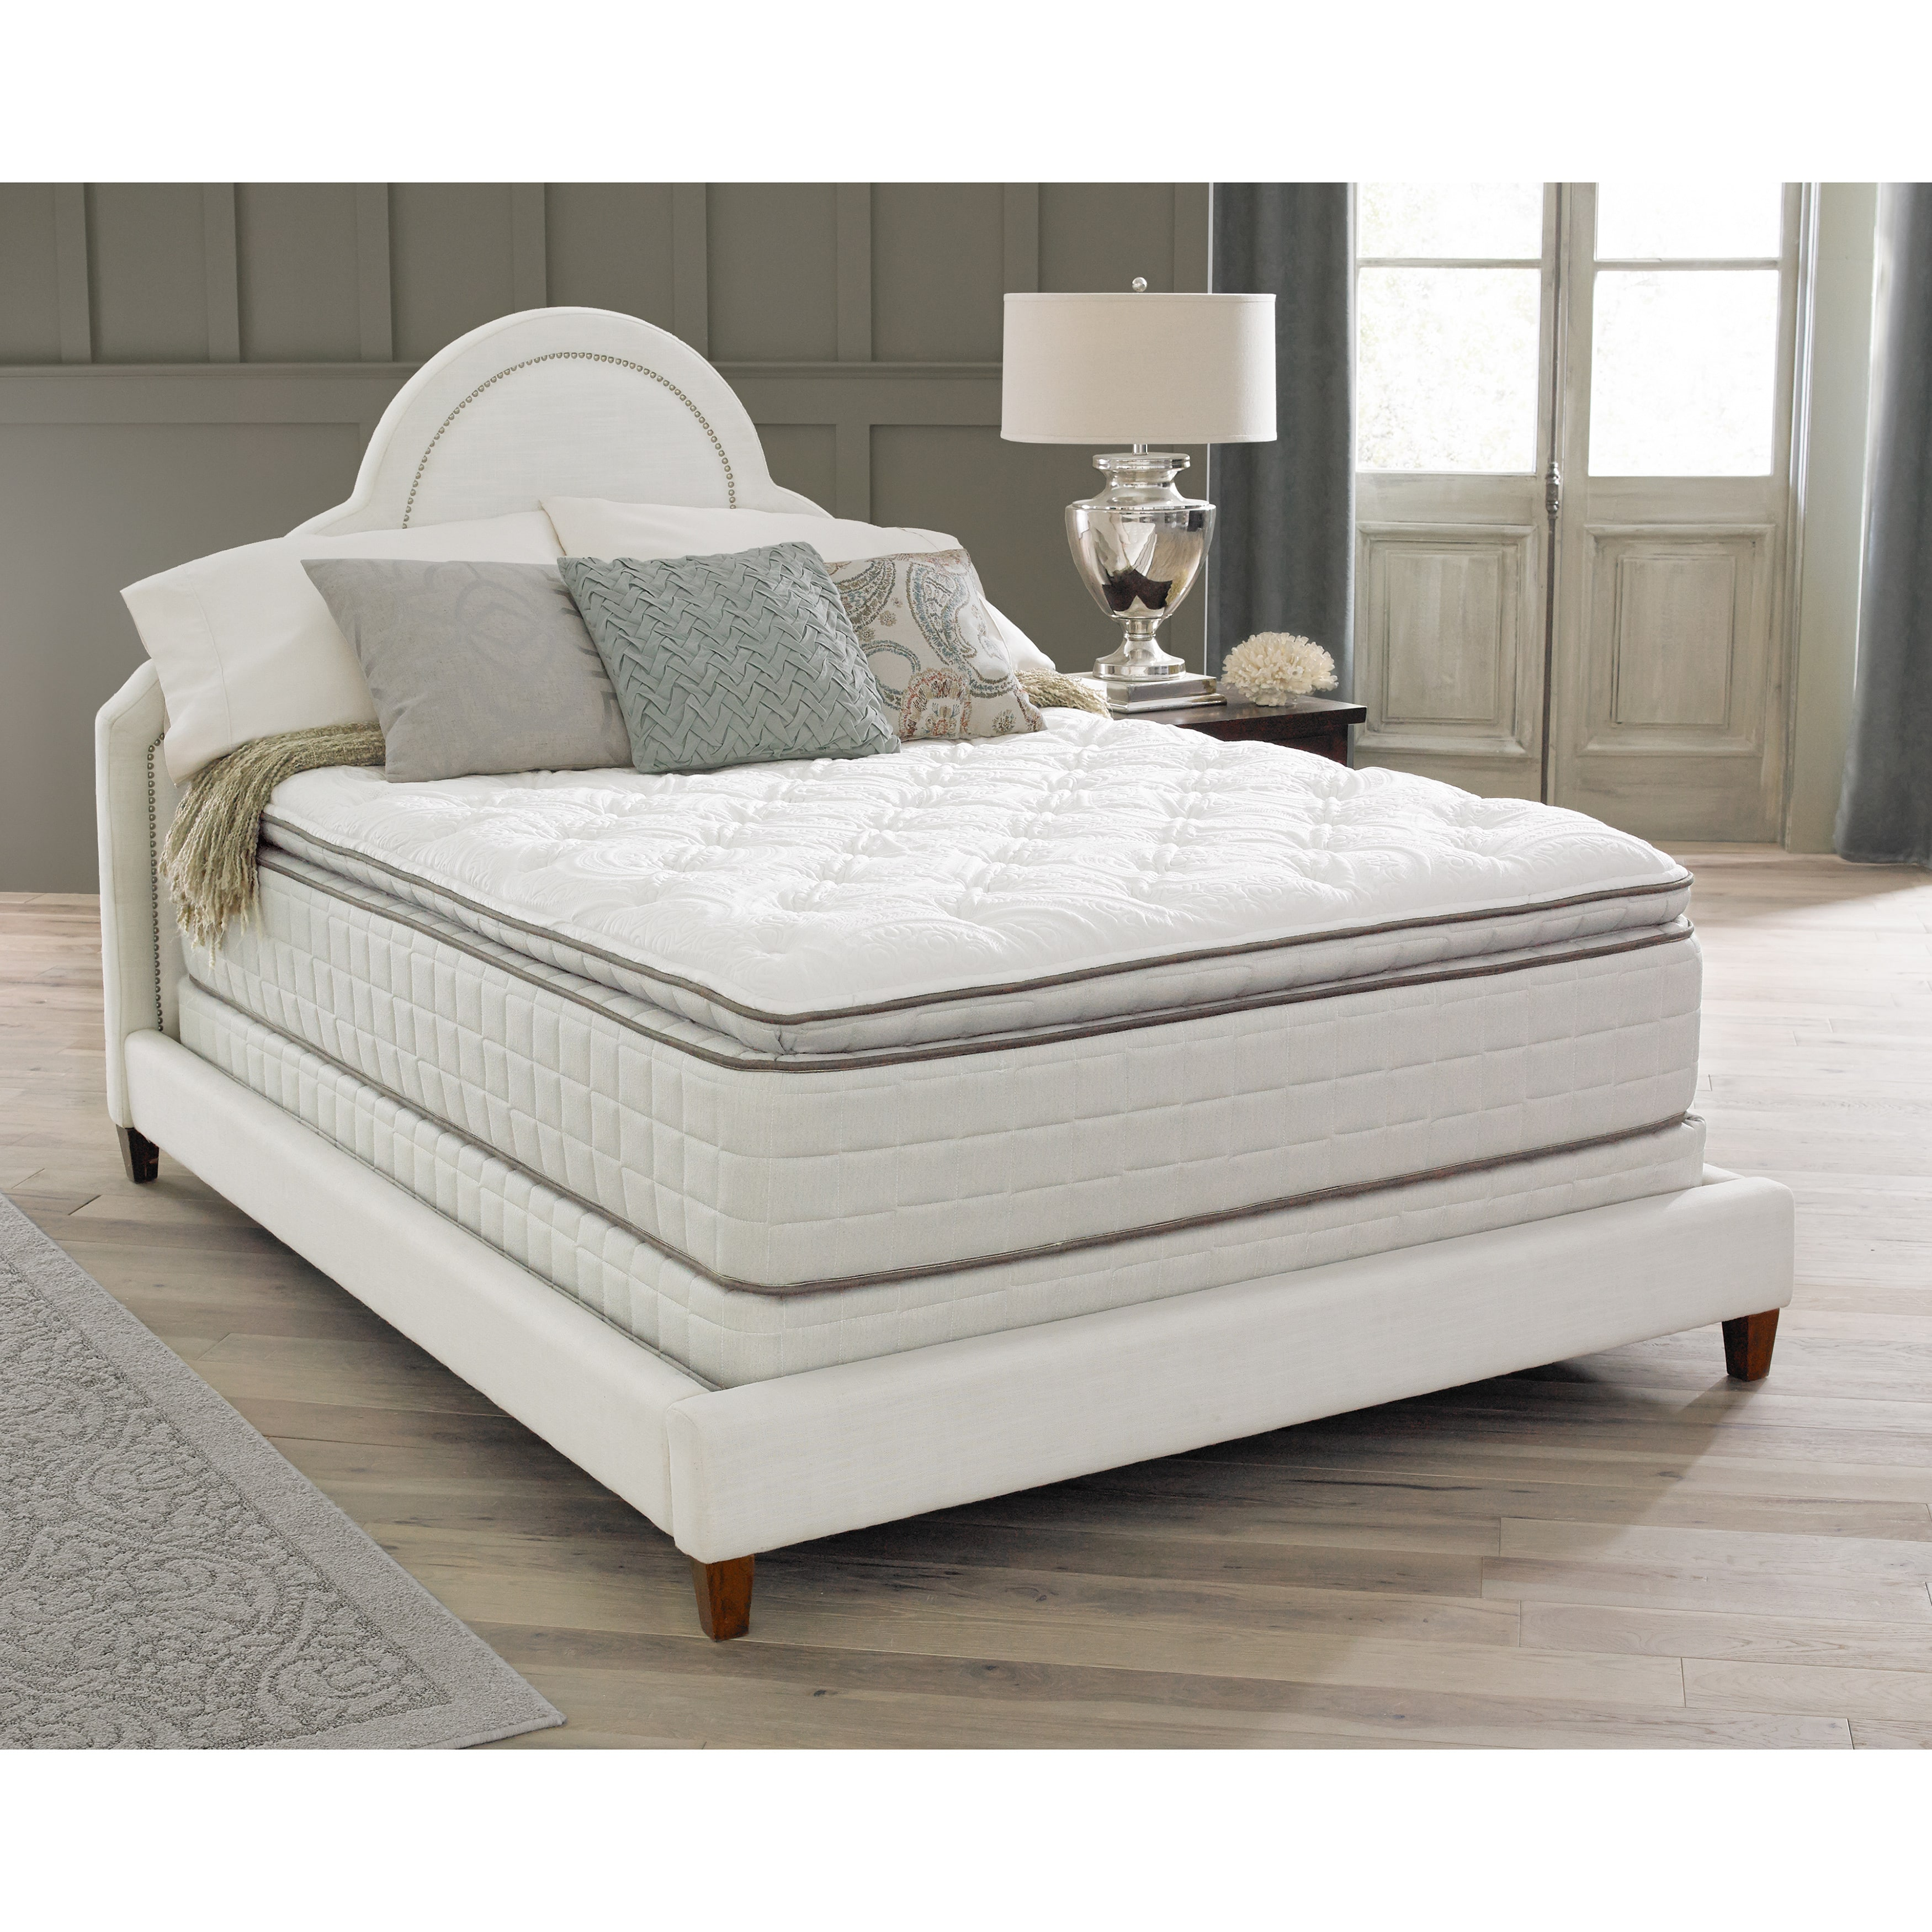 foam open j action mattress williams d memory dreams details coil harlow vera topped shop show sweet product wang